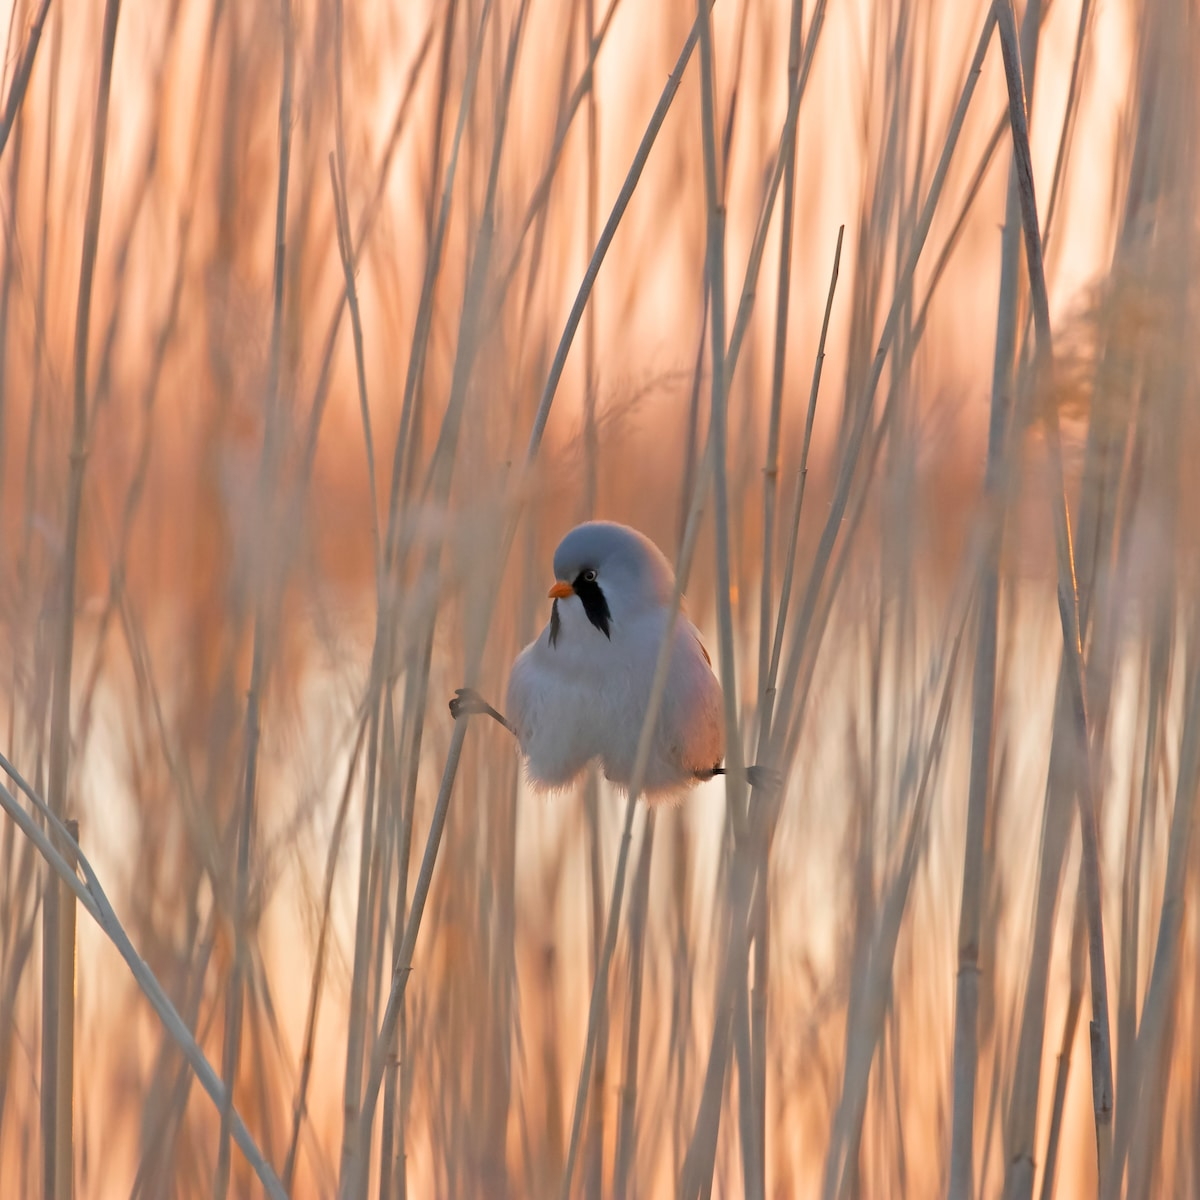 Bearded Tit Balancing in the Reeds